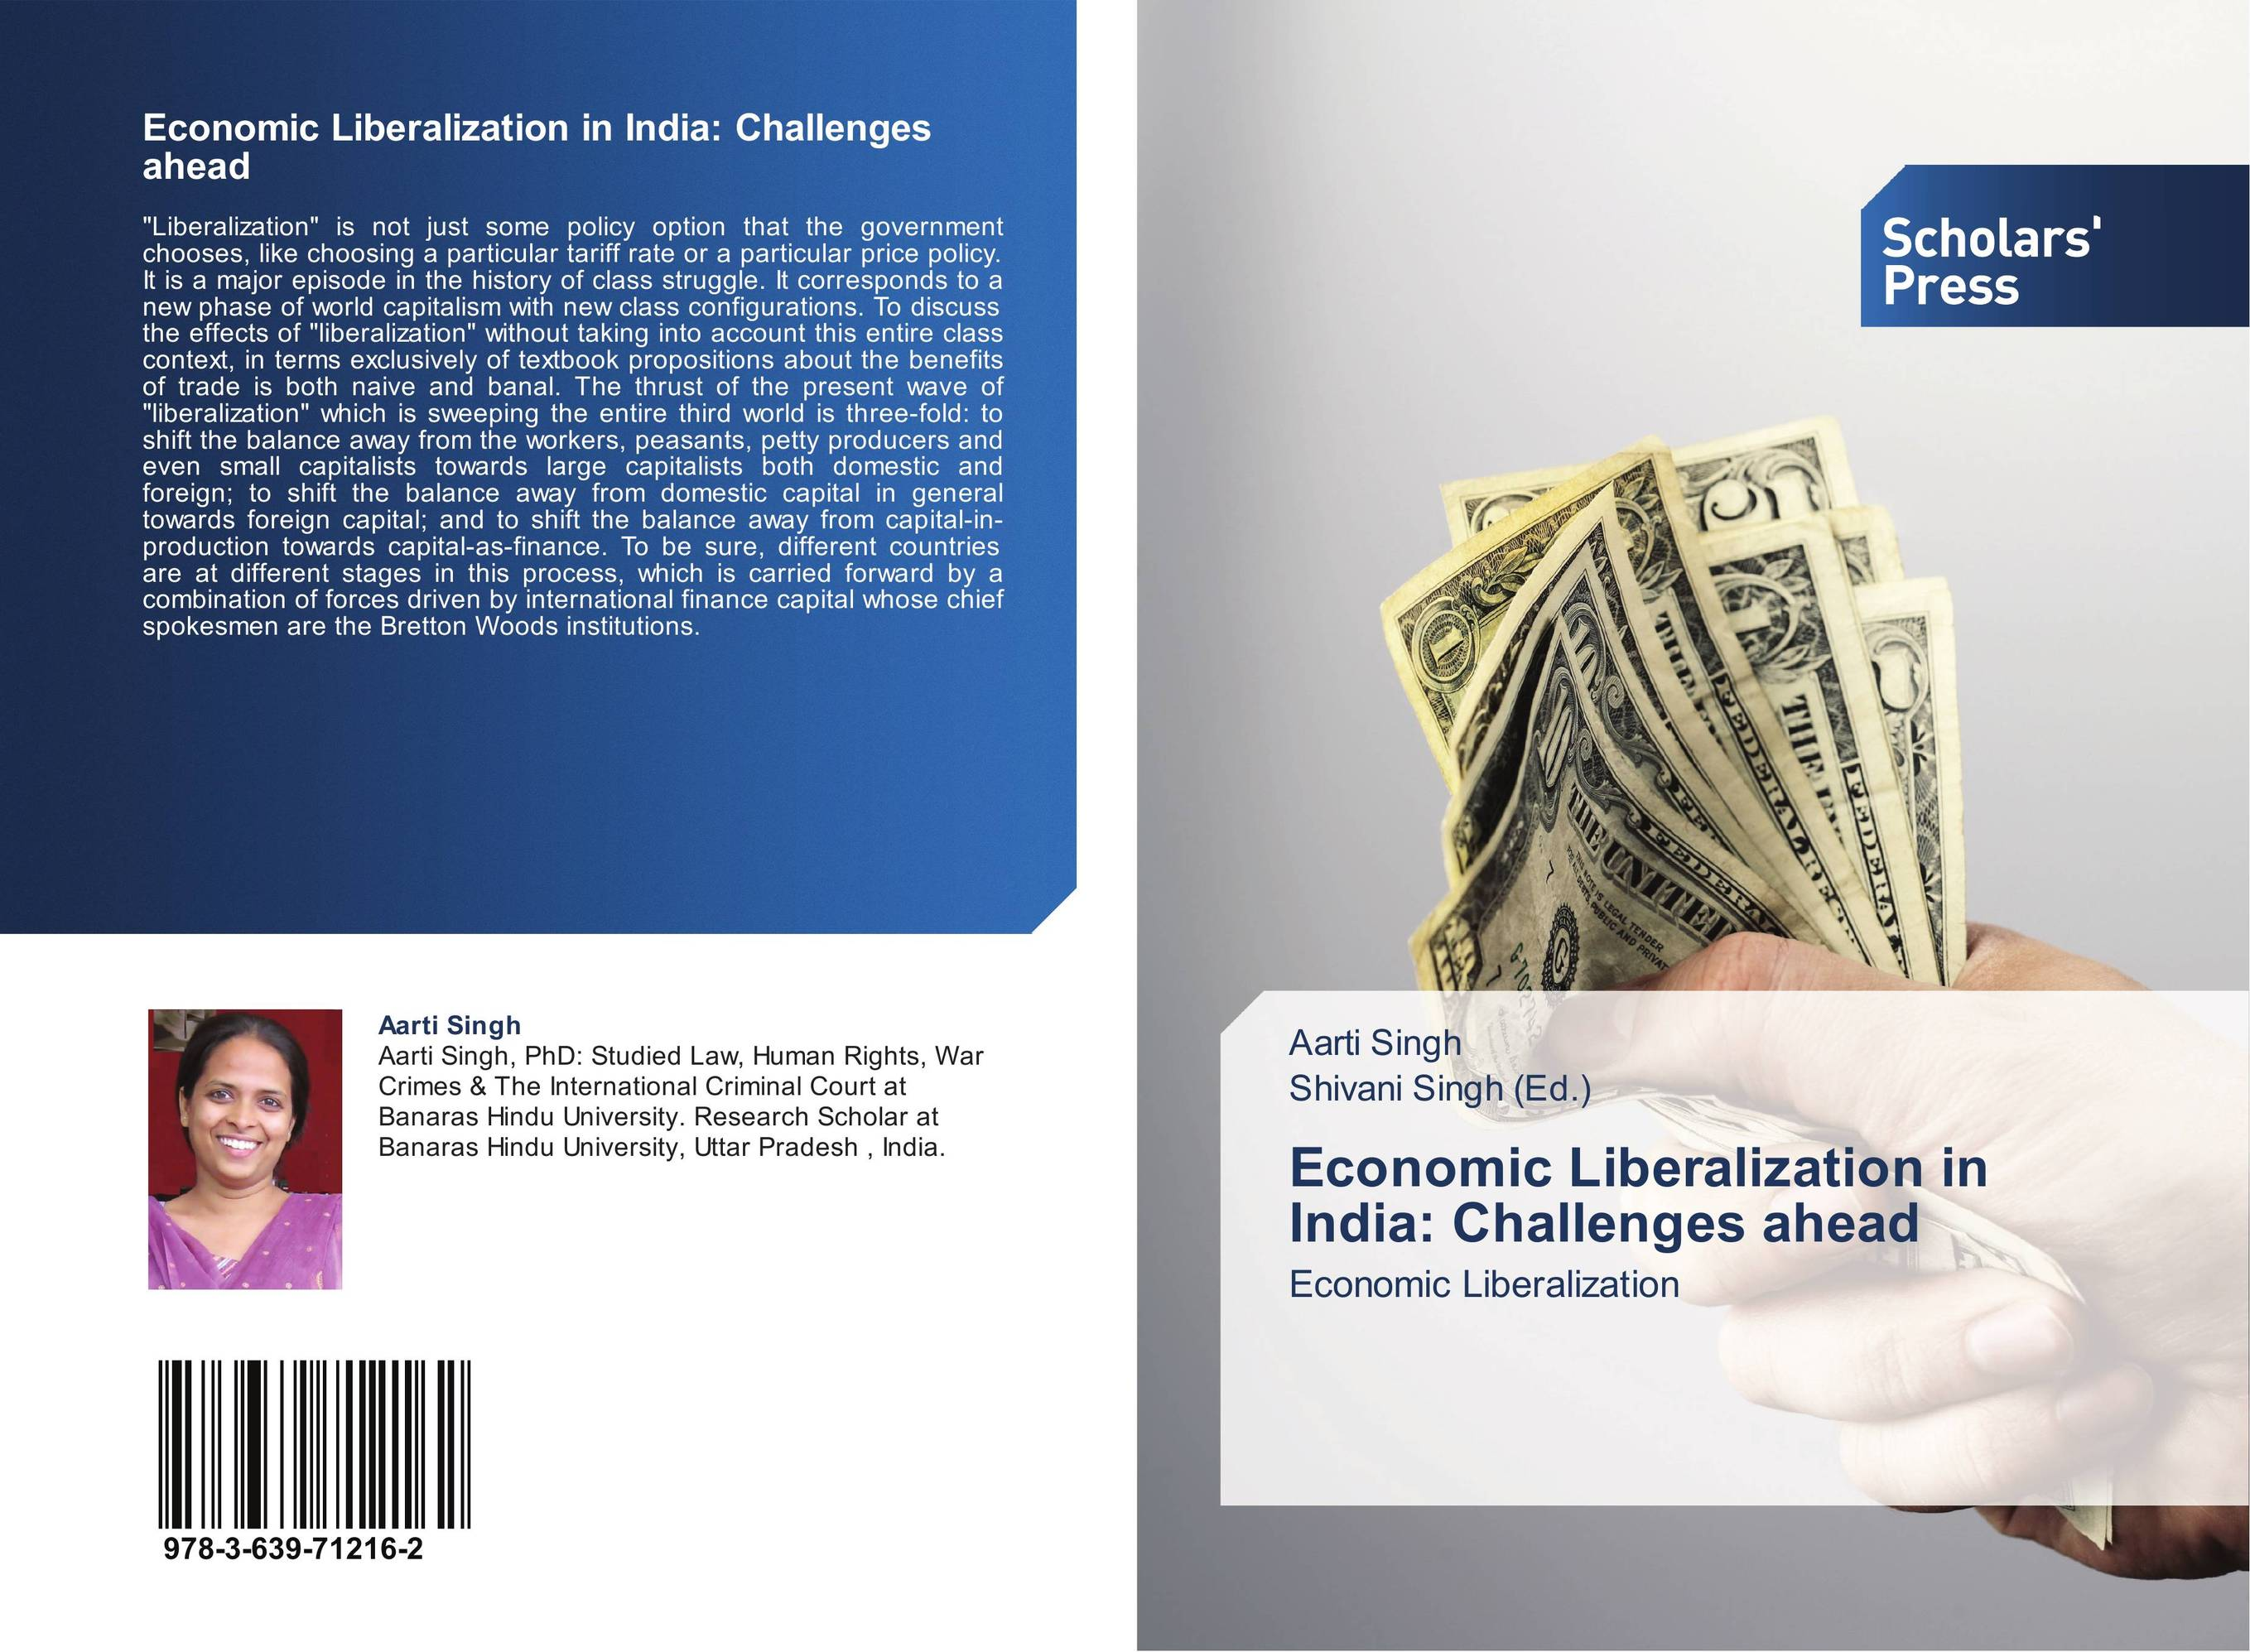 essay on economic liberalization in india Conclusion the advent of globalization as a result of liberalization and privatization has both positive and negative impacts on our economy while one group of people argue that globalization provides greater opportunities, opens up new markets, promotes the use of better technology and increases the efficiency of production, another group of people feel it does not protect the domestic.